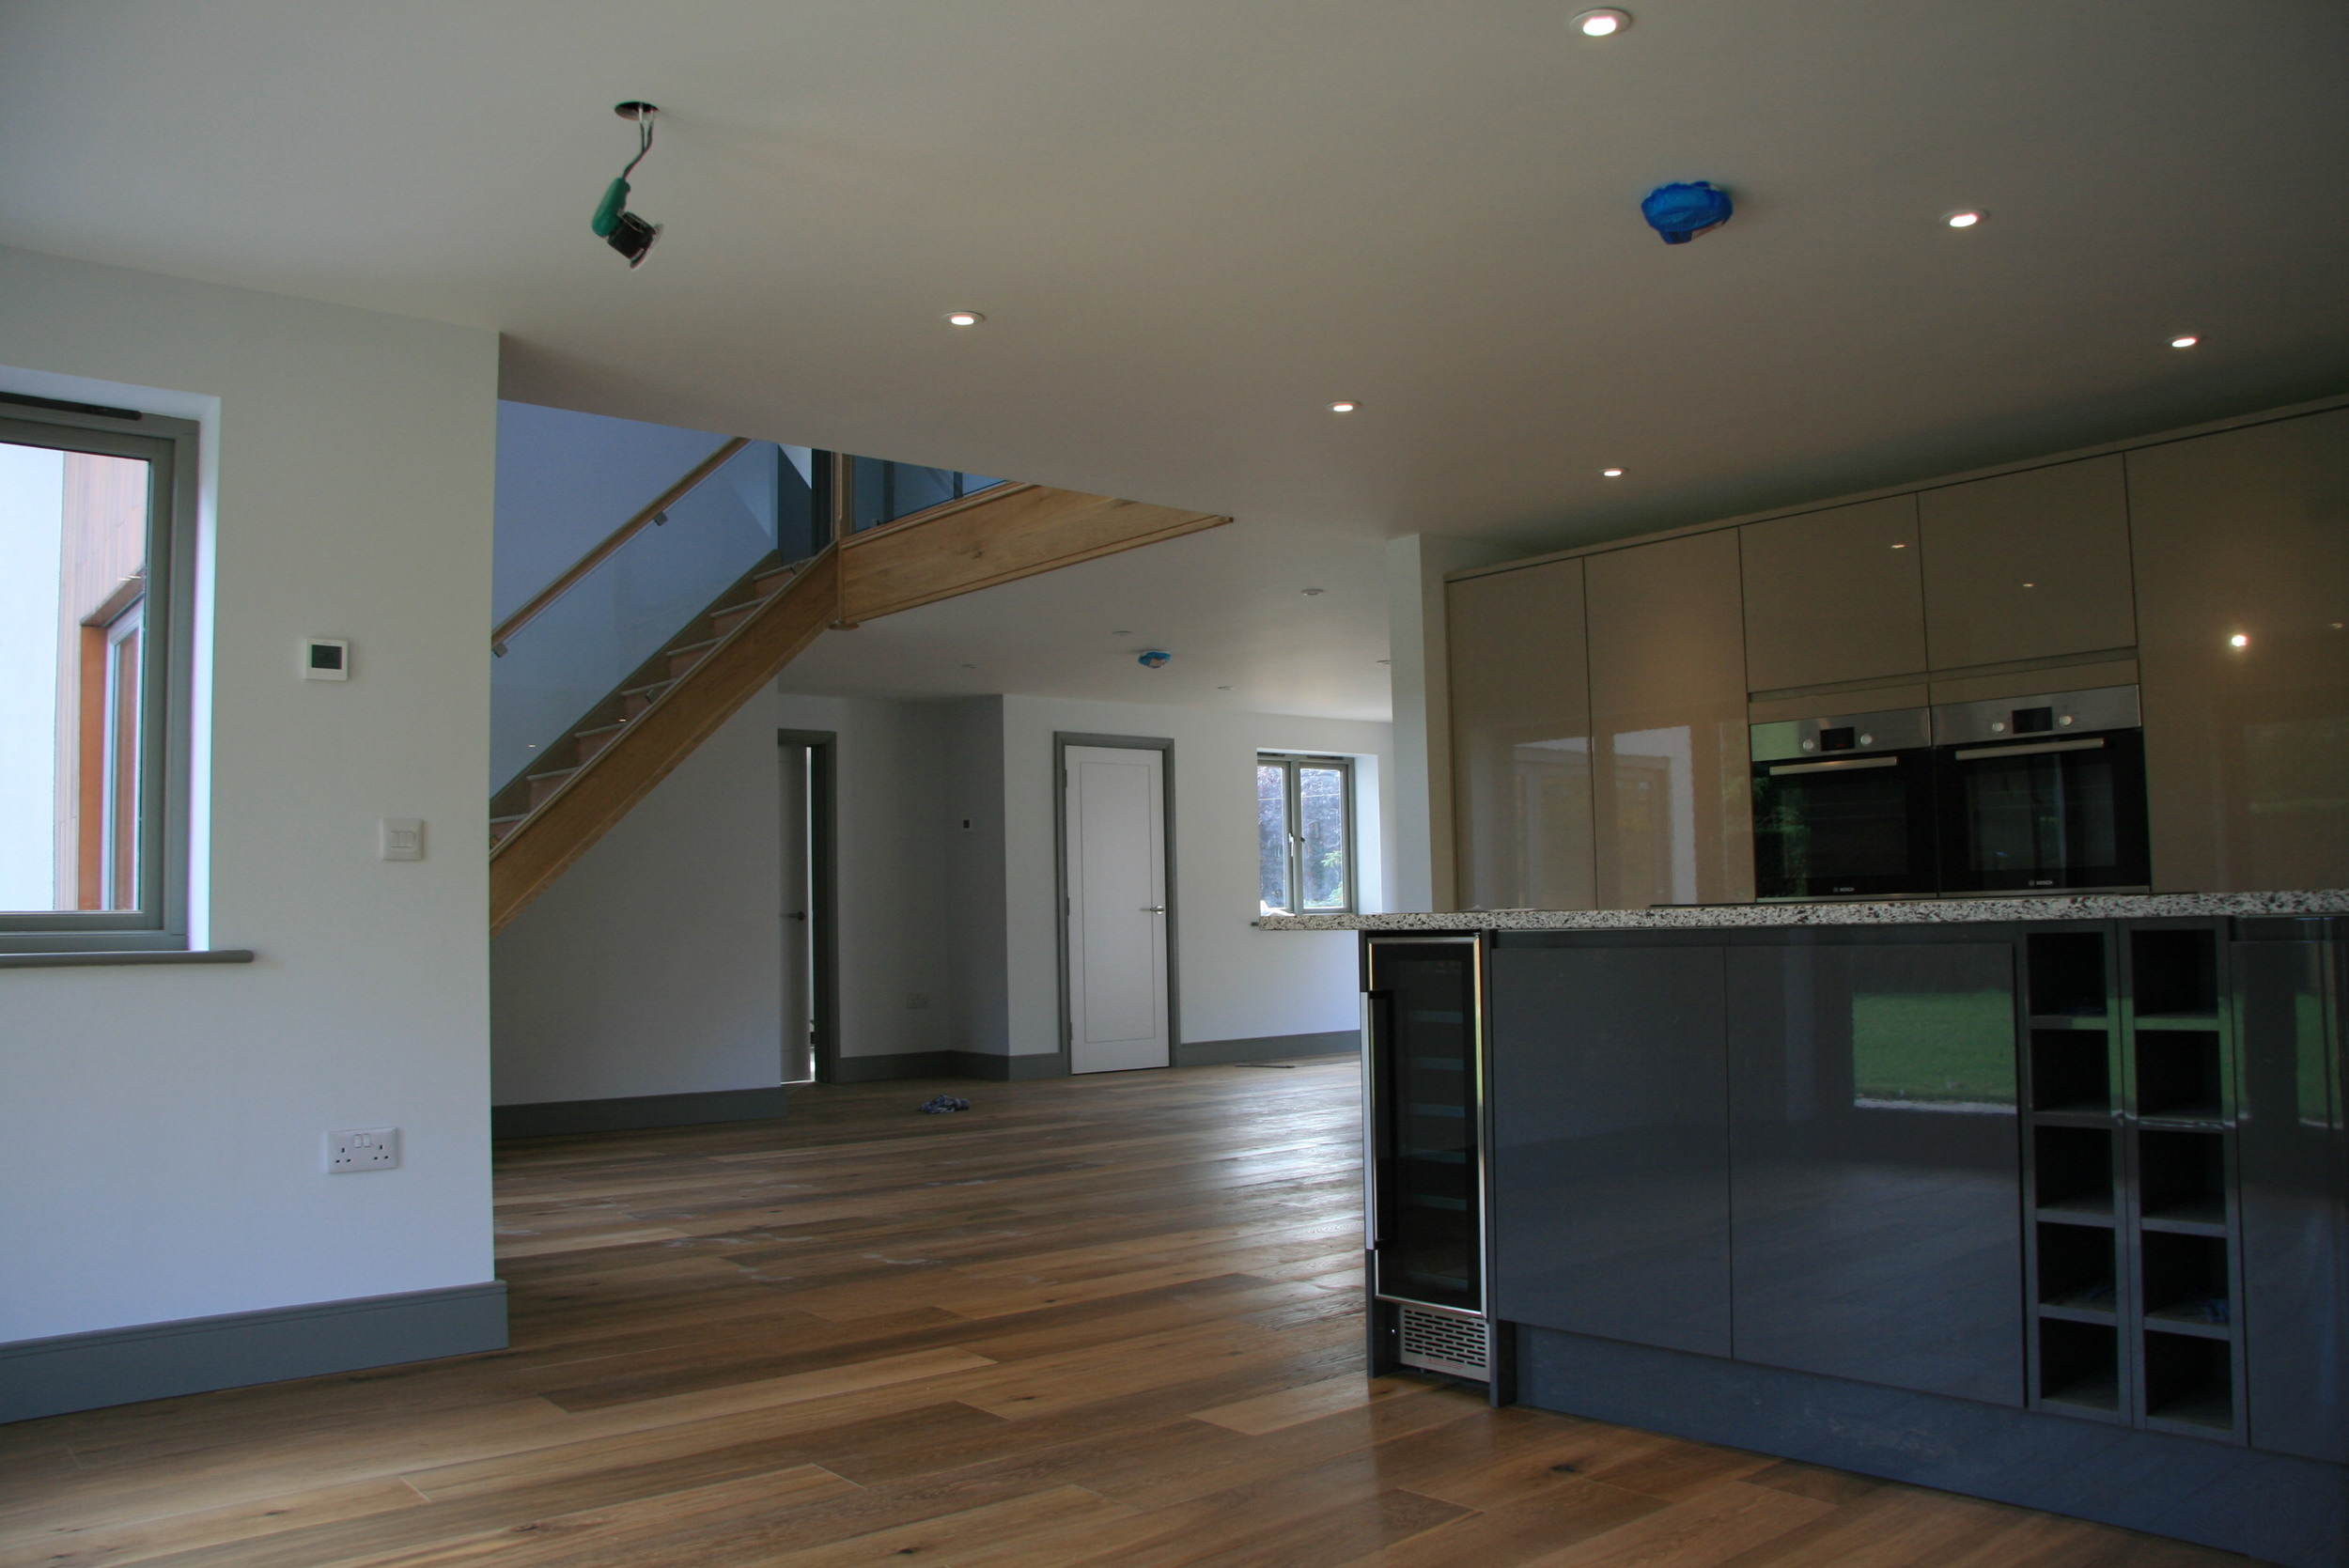 The property boasts a large open plan interior with contemporary fixtures and fittings.